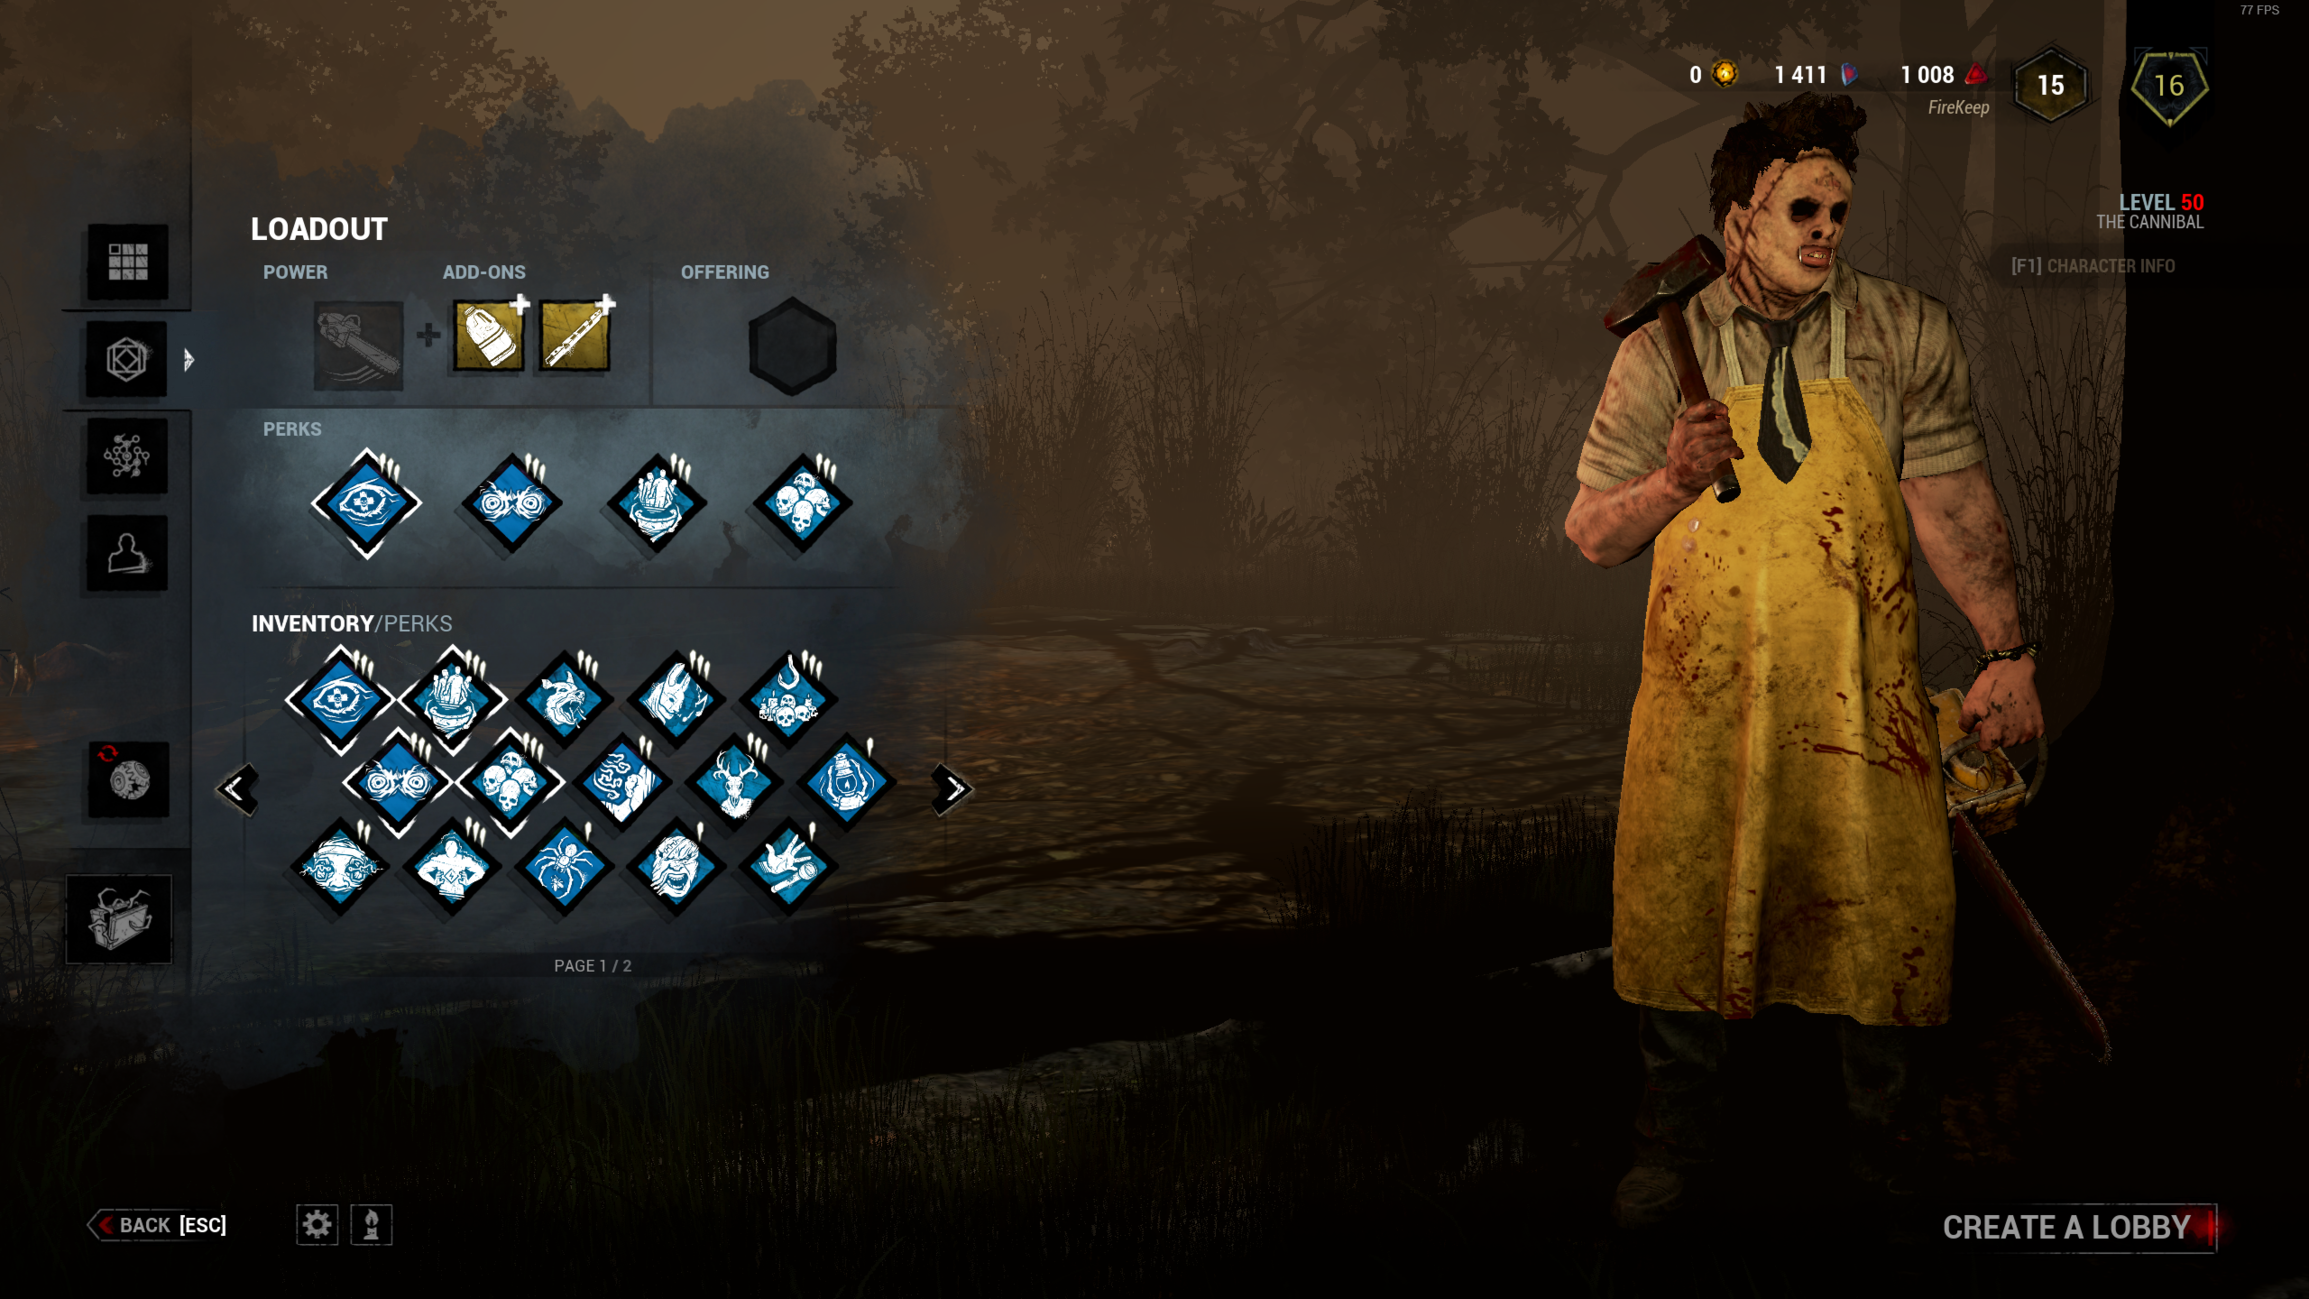 FireKeep's Blue Perk Pack v 1 0 — Dead By Daylight